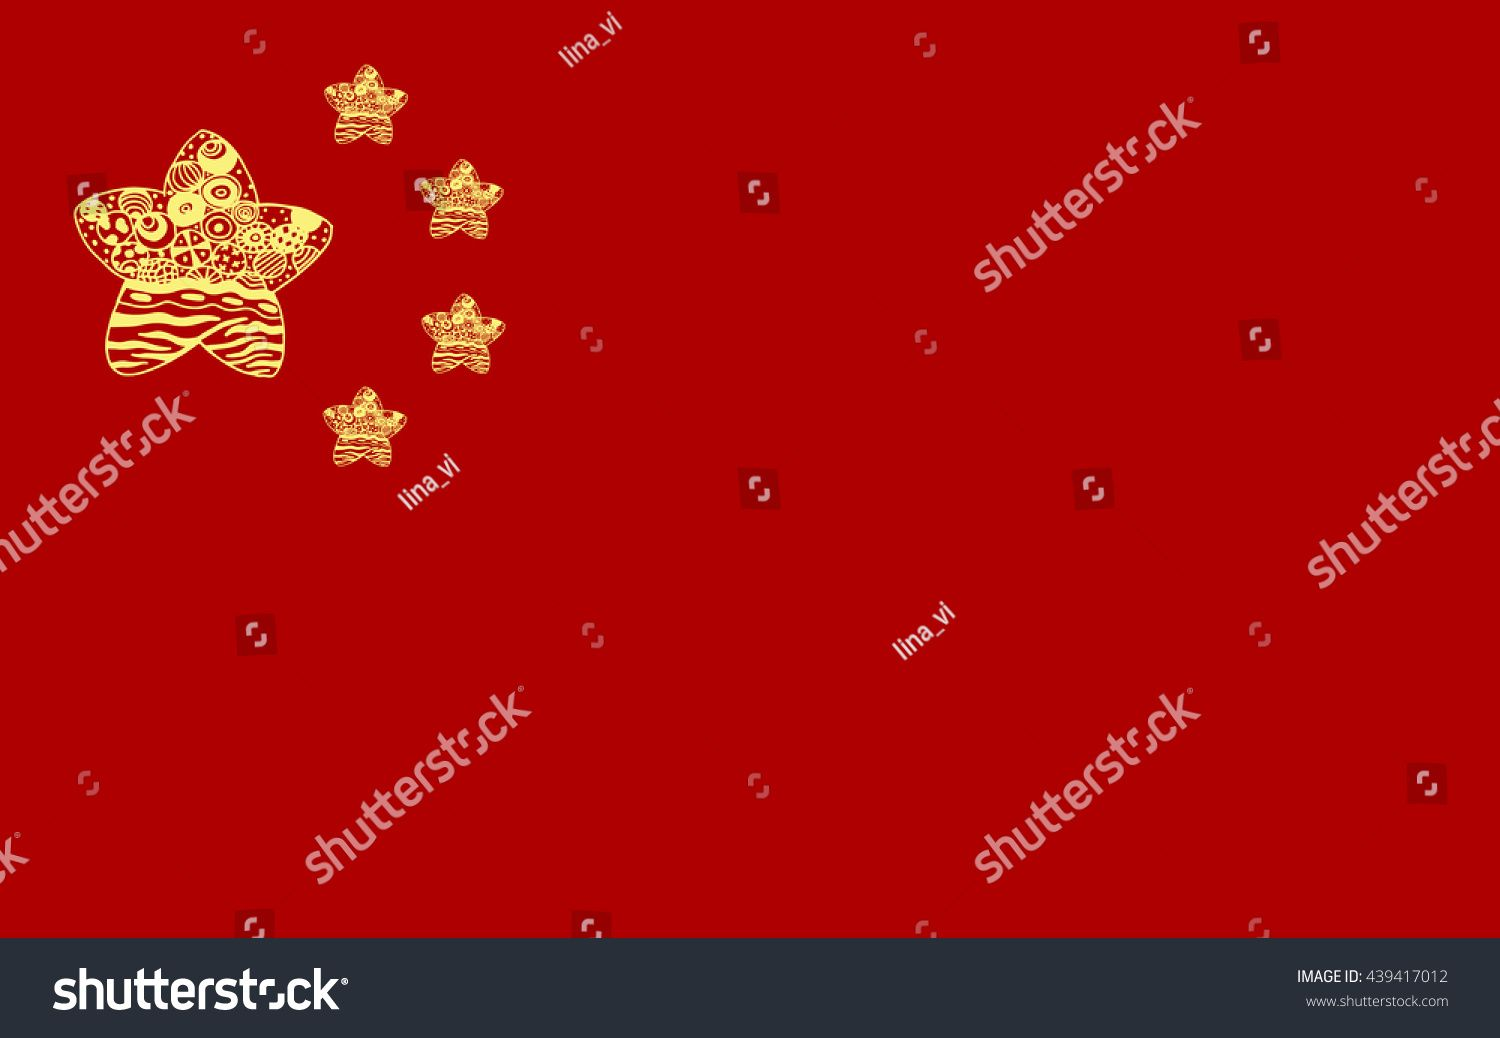 Chinese Flag Zenart Red Background And Five Yellow Stars Of Different Sizes Sponsored Ad Zenart Red Chin In 2020 Currency Symbol How To Draw Hands Colored Chalk